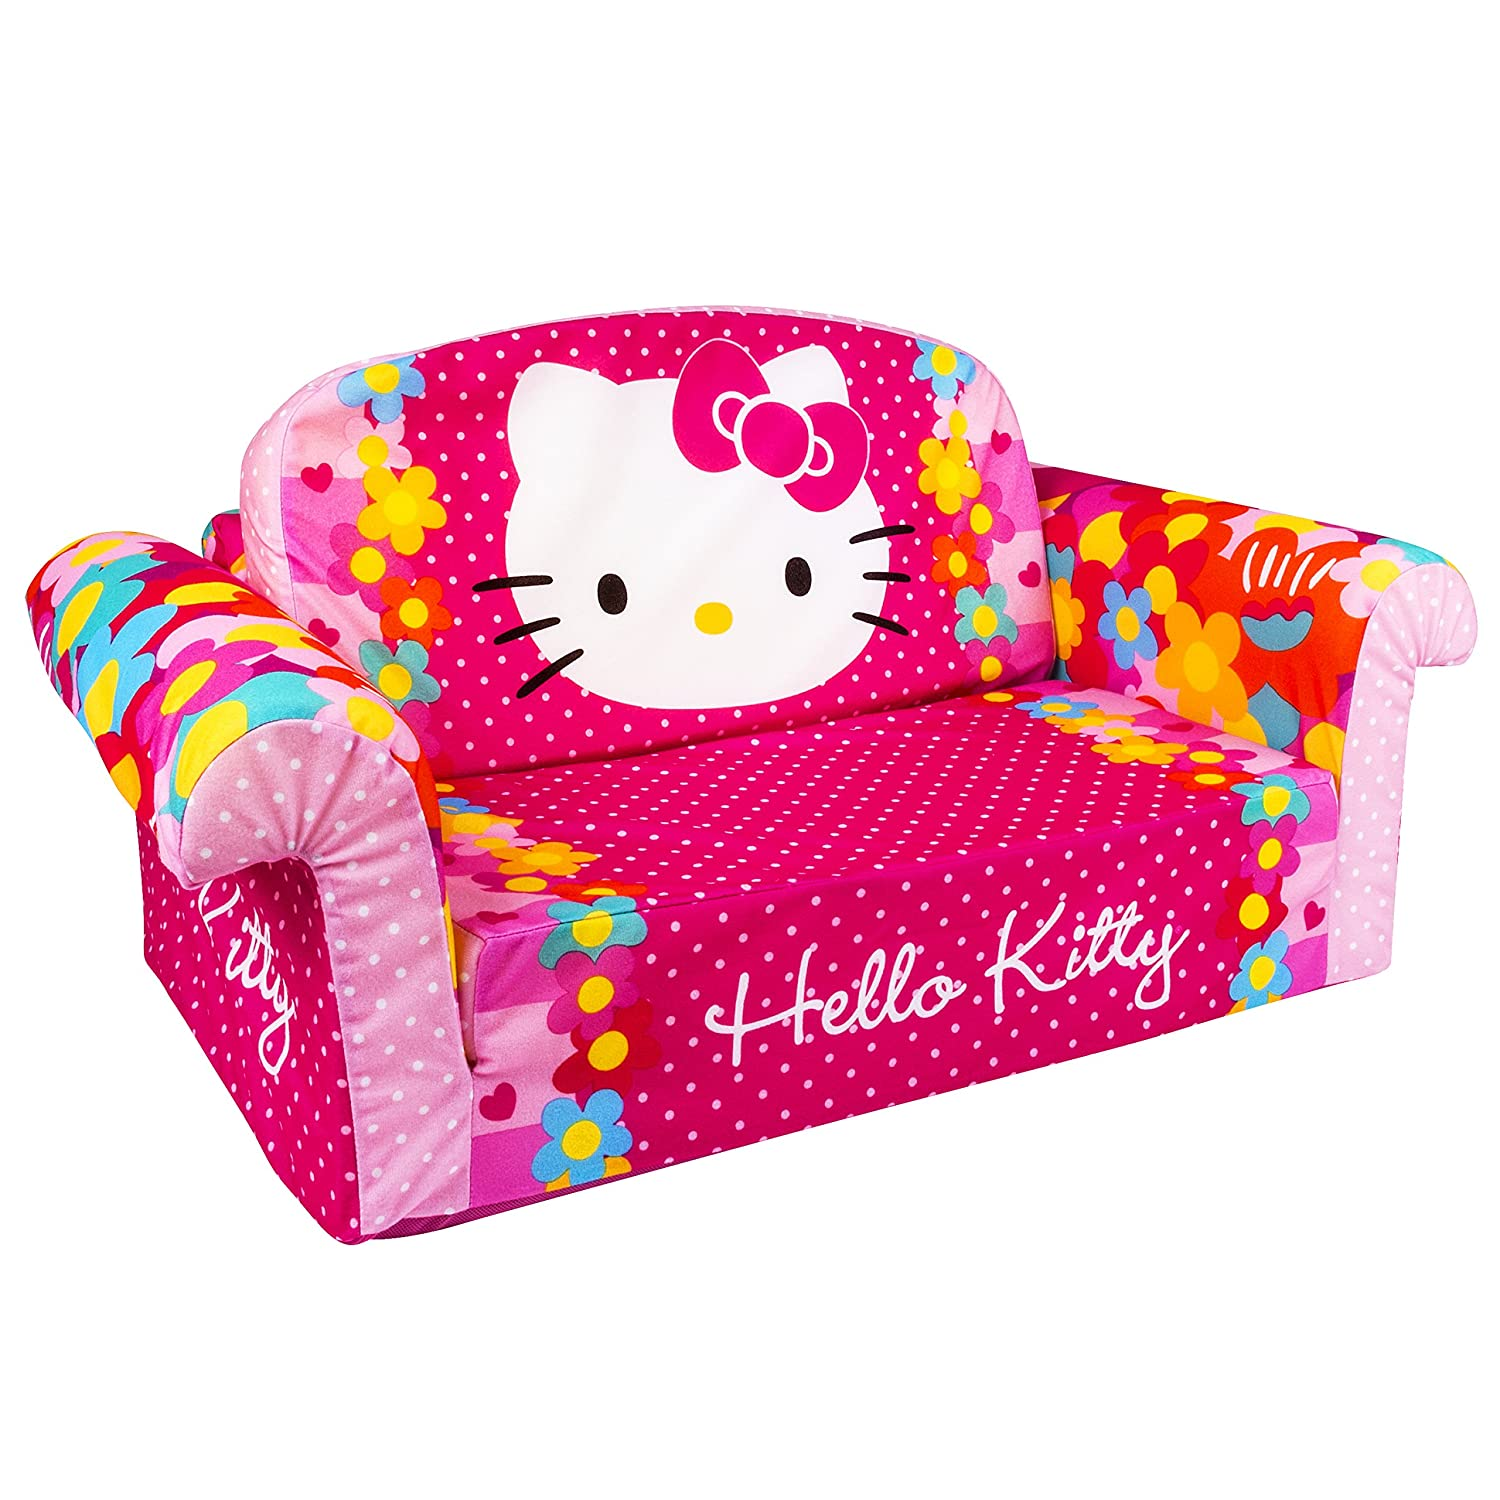 Hello kitty chair - Amazon Com Marshmallow Furniture Children S 2 In 1 Flip Open Foam Sofa Hello Kitty By Spin Master Toys Games